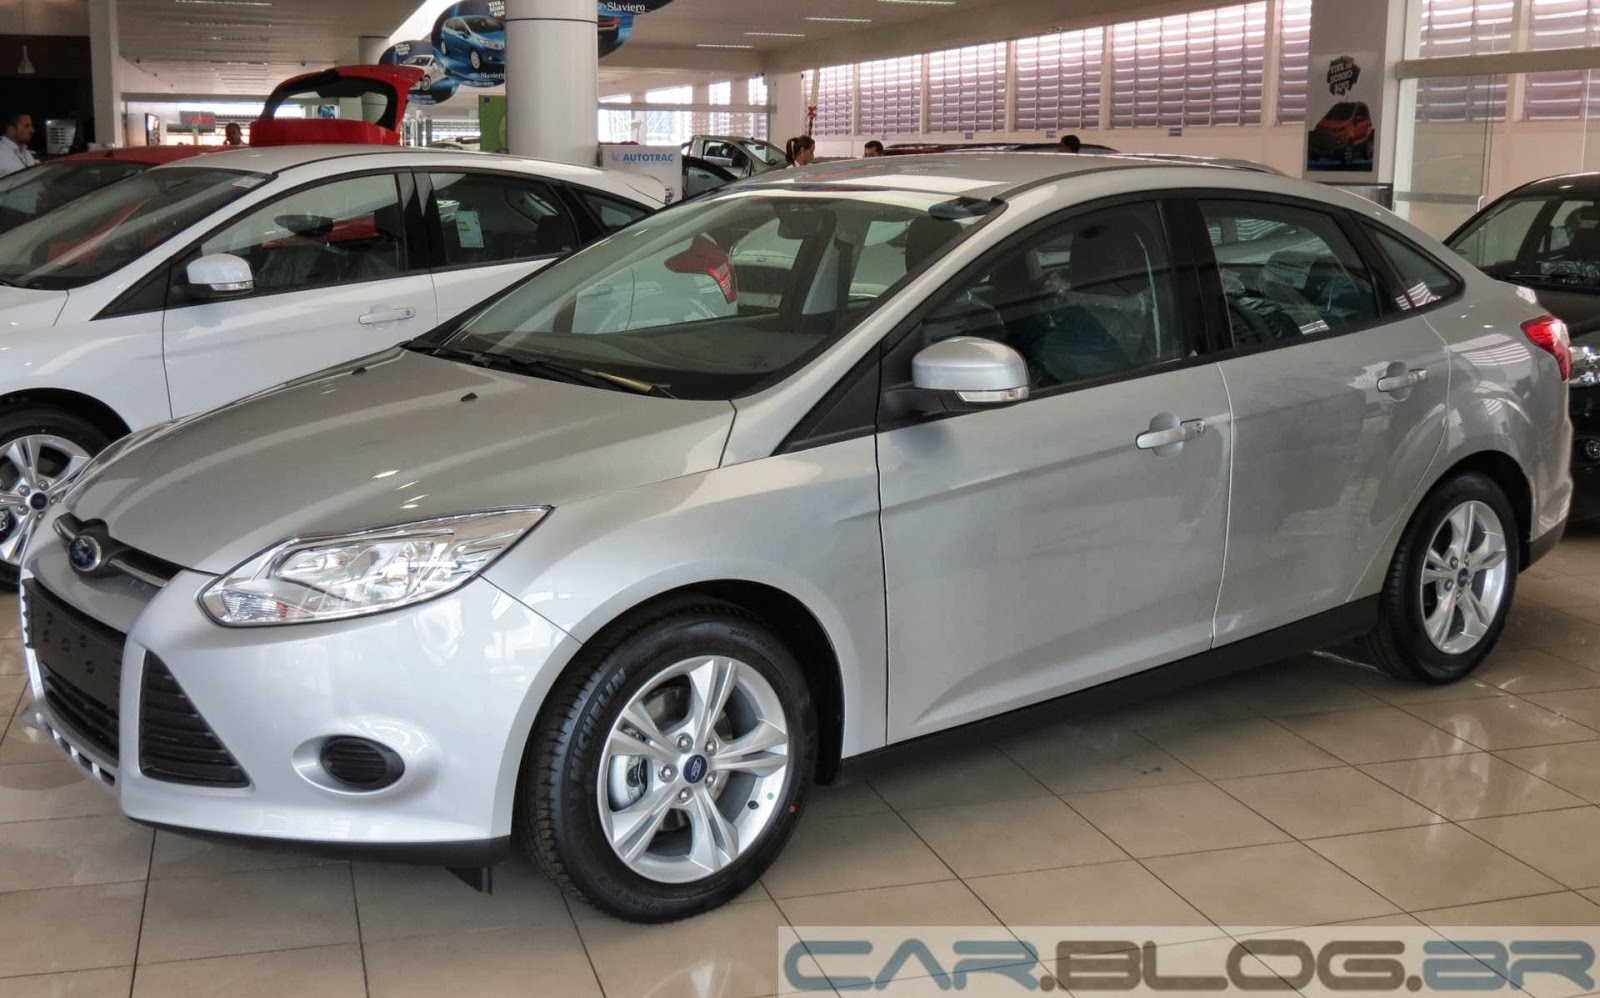 Novo Focus Sedan S 2.0 Powershift 2014